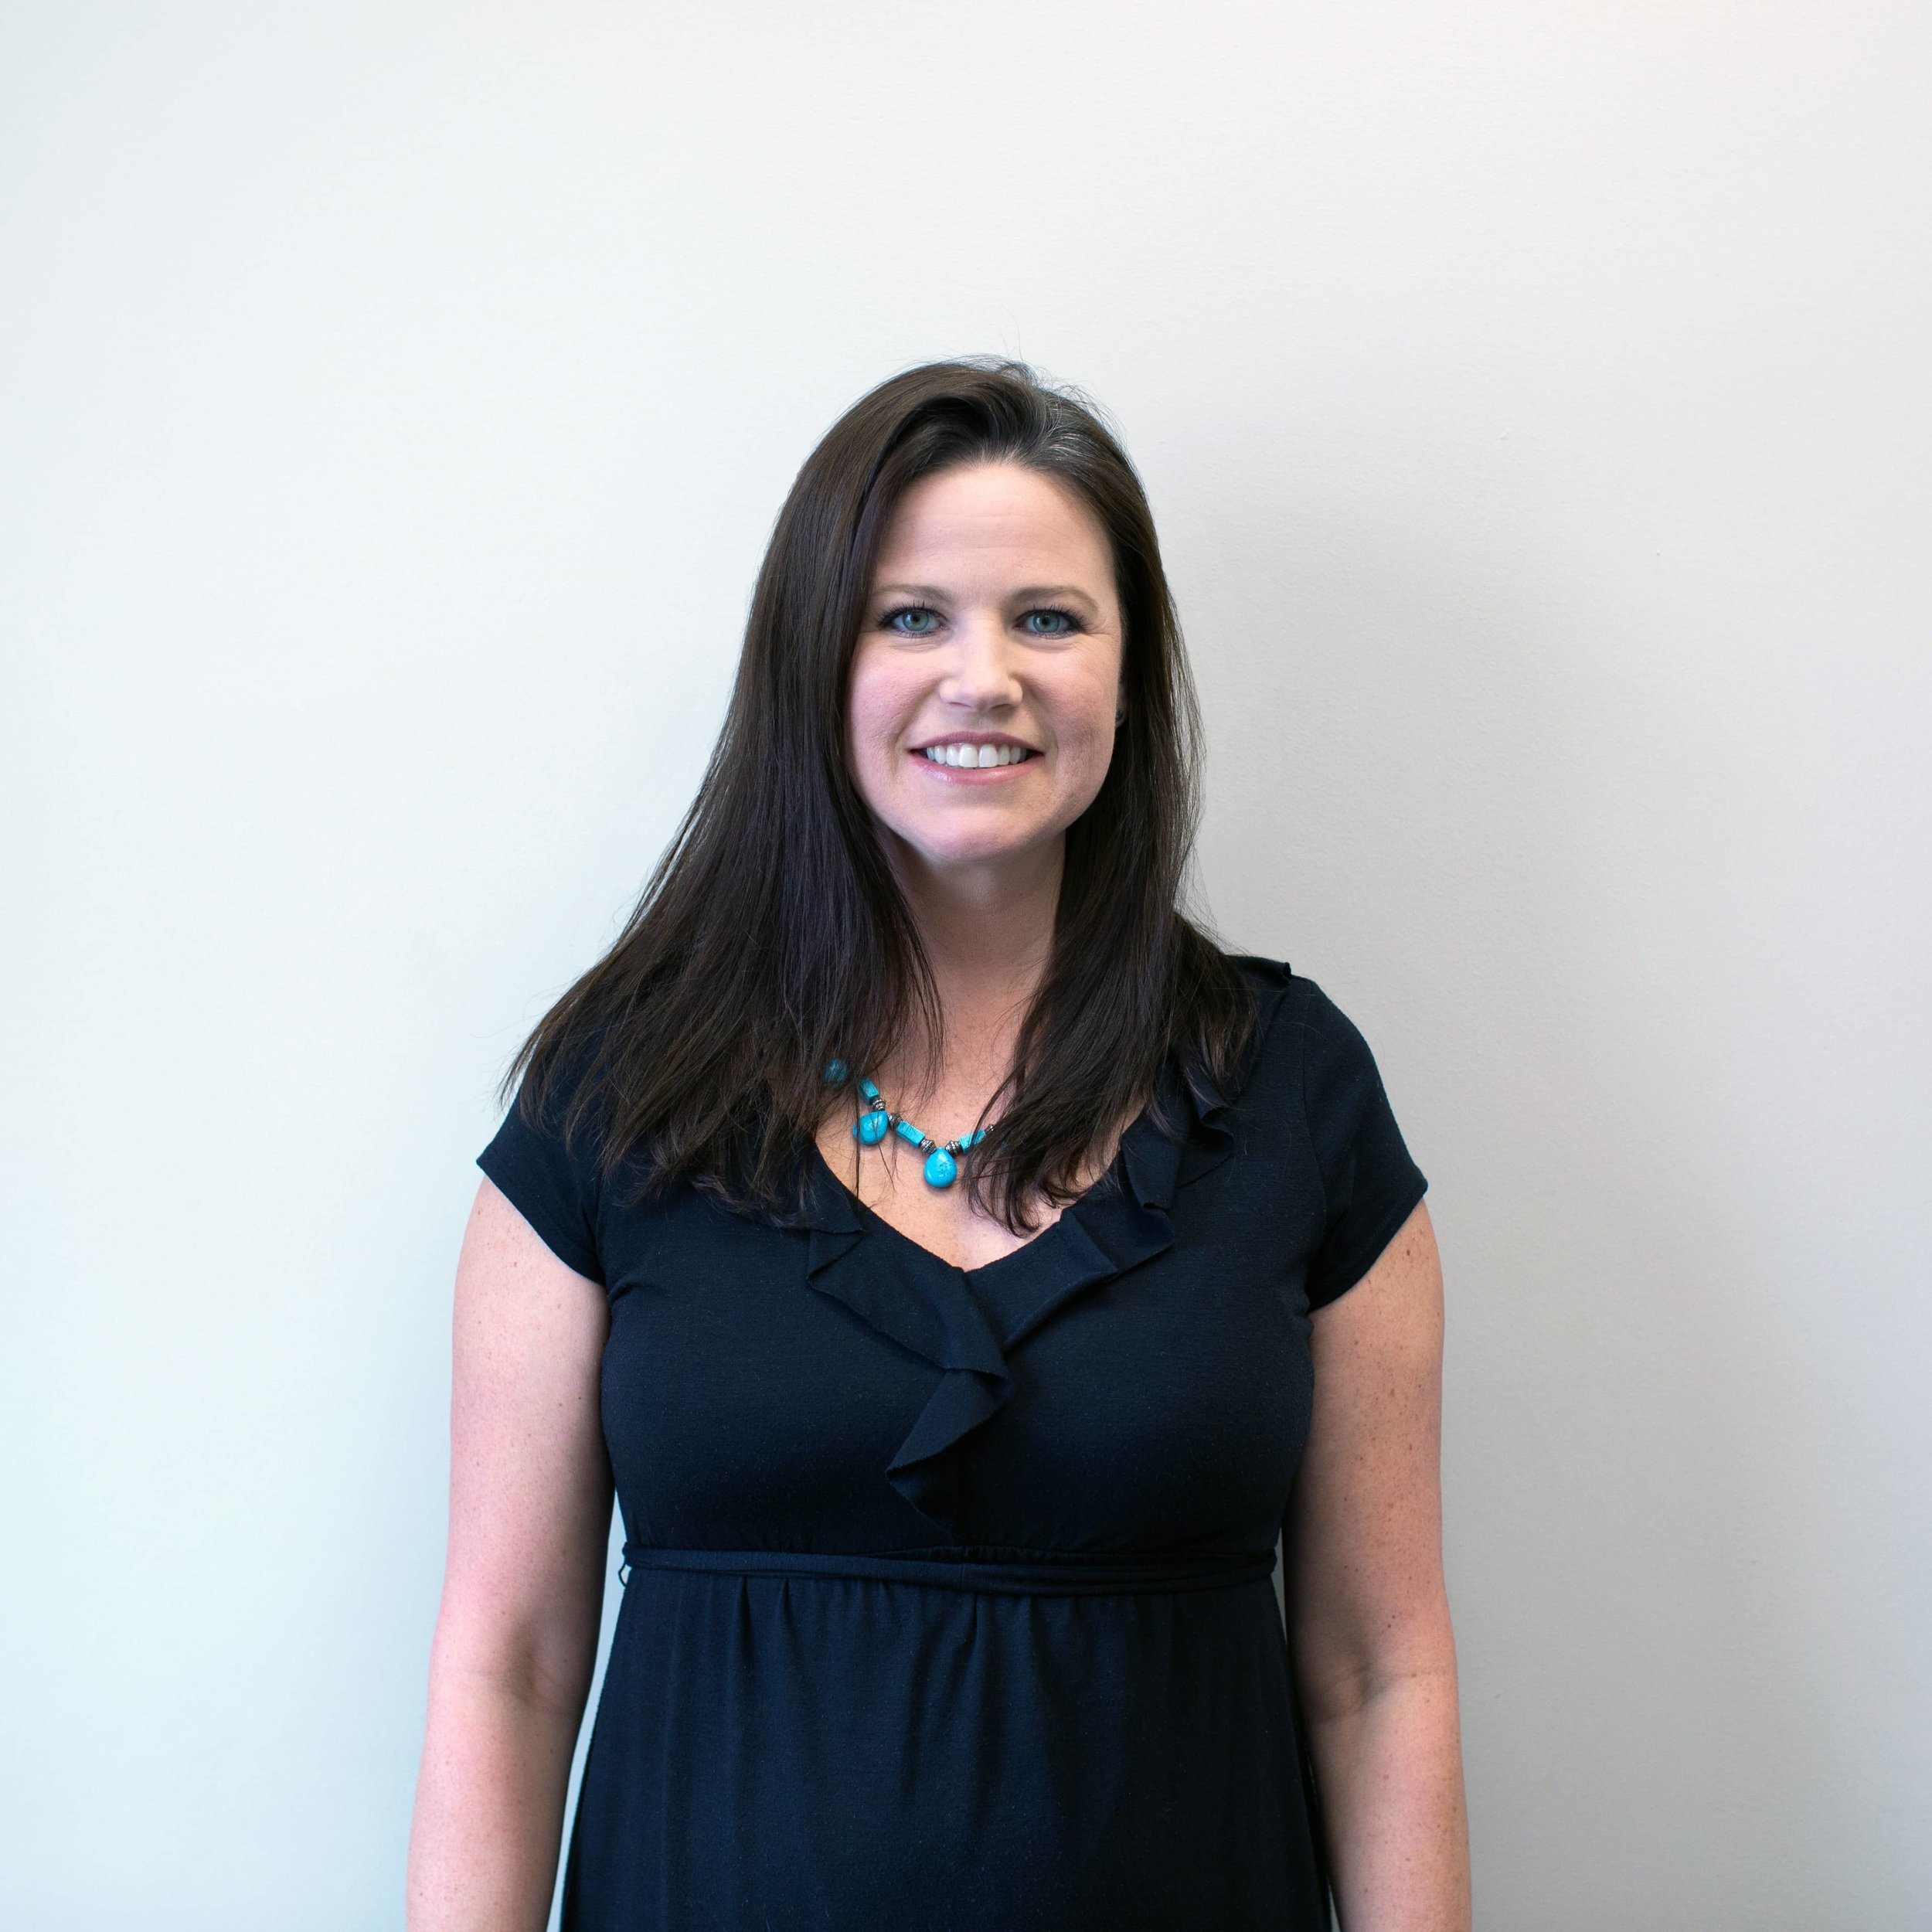 Michelle Boston Administrative Assistant   Michelle has been in the dental field since 1997 and with Gershenzon Dental since 2012. She was born and raised in NW Indiana and currently resides there with her husband and two beautiful daughters. She loves the Chicago Cubs, camping and going to concerts.